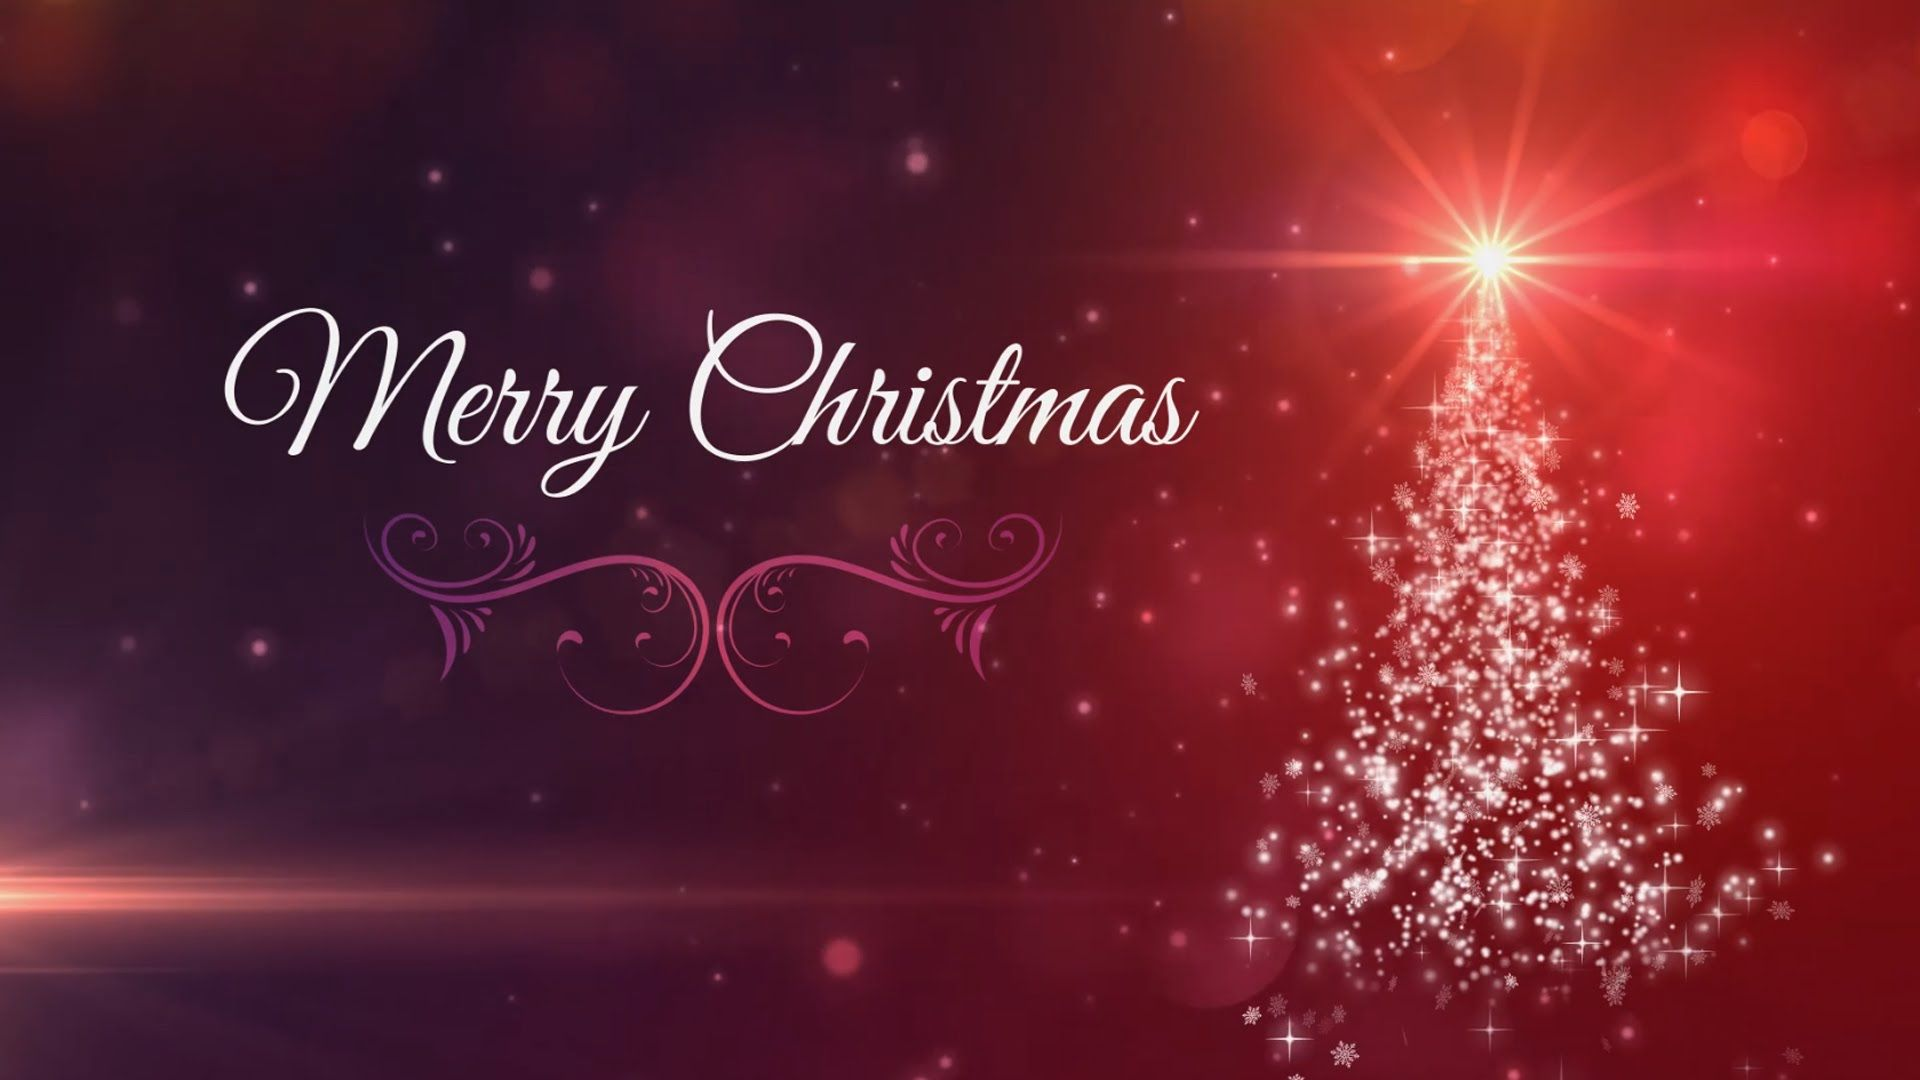 Exceptionnel God Bless You Christmas Candles Wallpapers HD Wallpapers